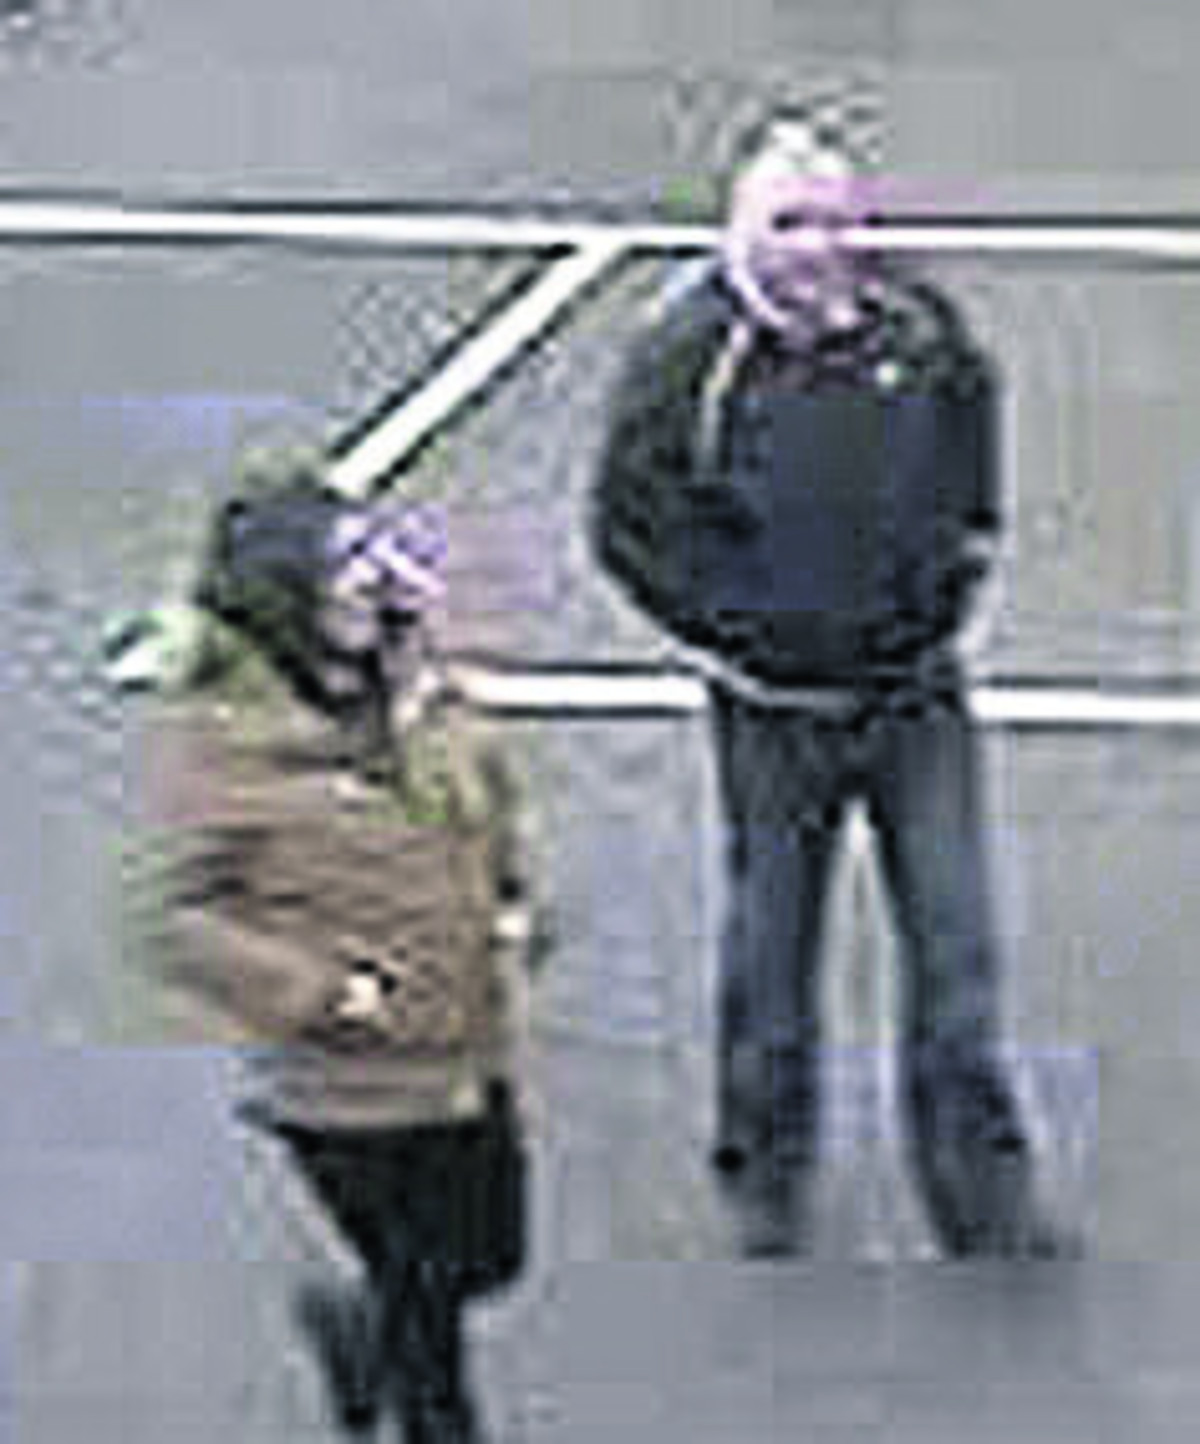 Van theft pair sought by police